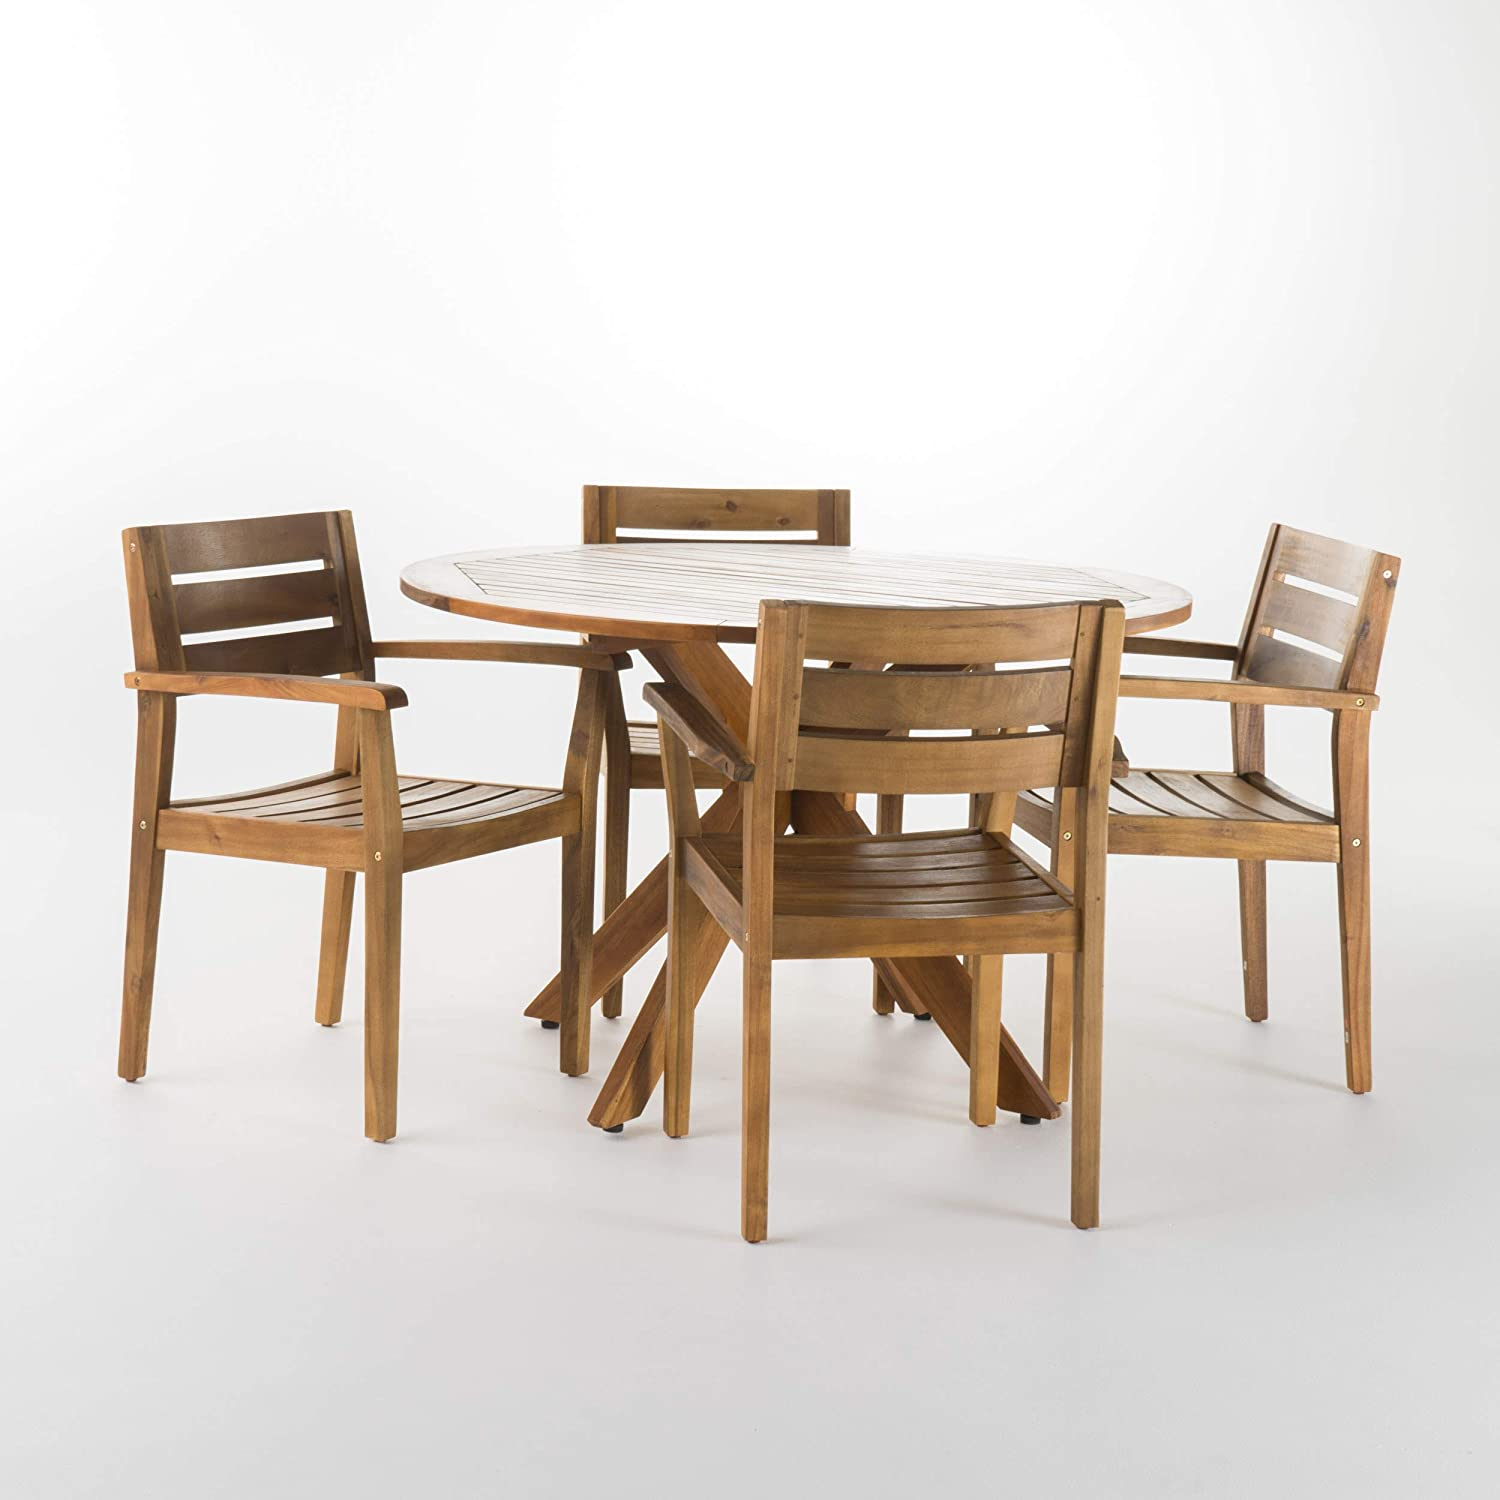 Amazon com gdf studio stanyan 5 piece outdoor acacia wood dining set perfect for patio with teak finish garden outdoor